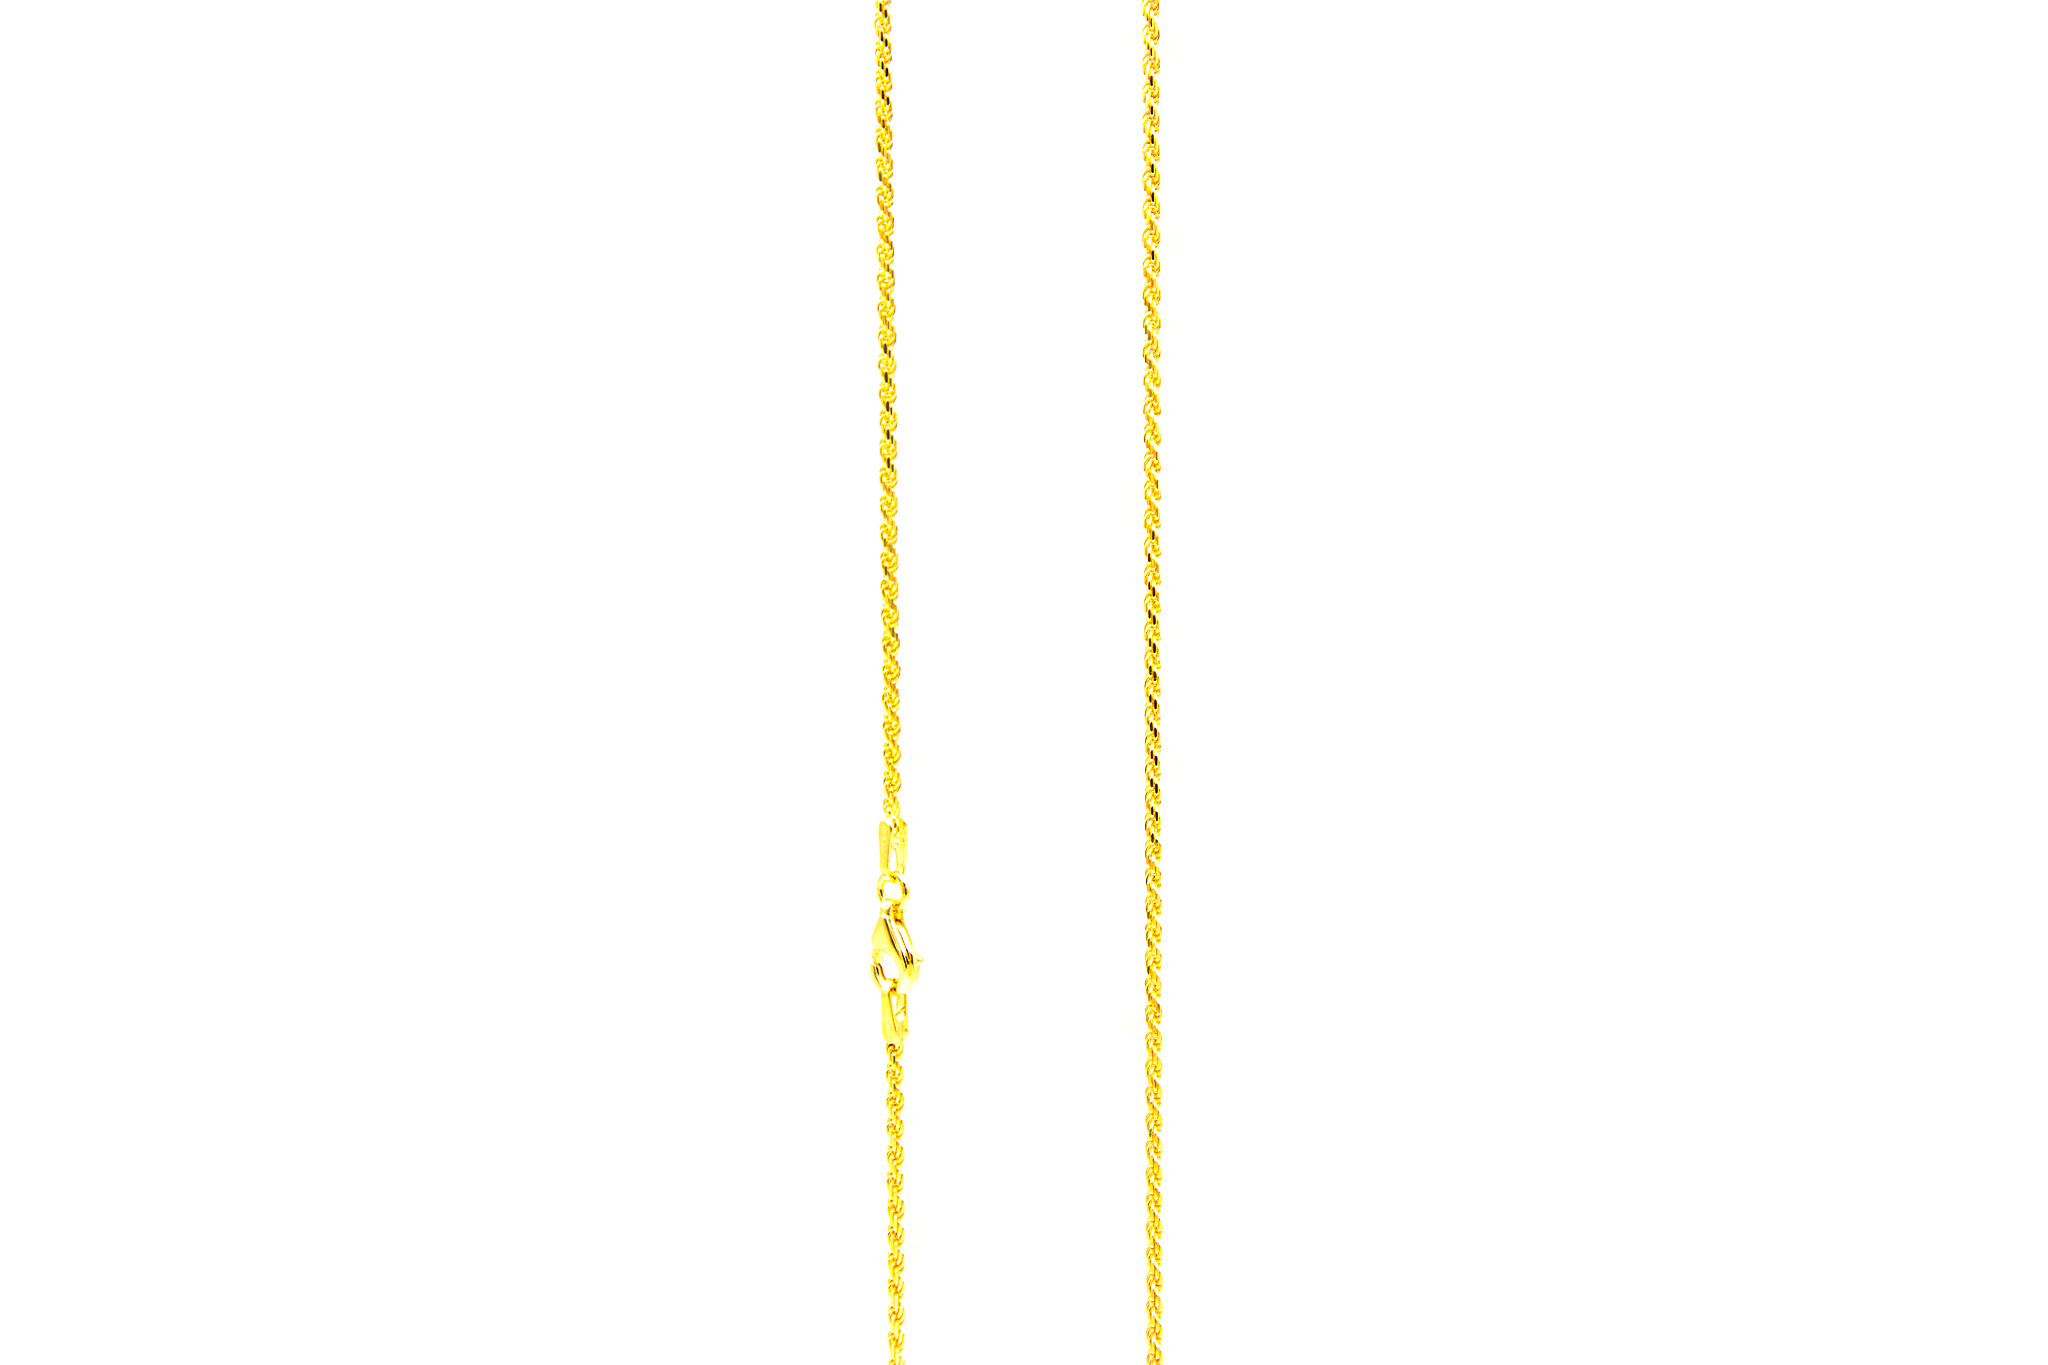 Rope chain cubic massief goud 18k 1.5mm-1